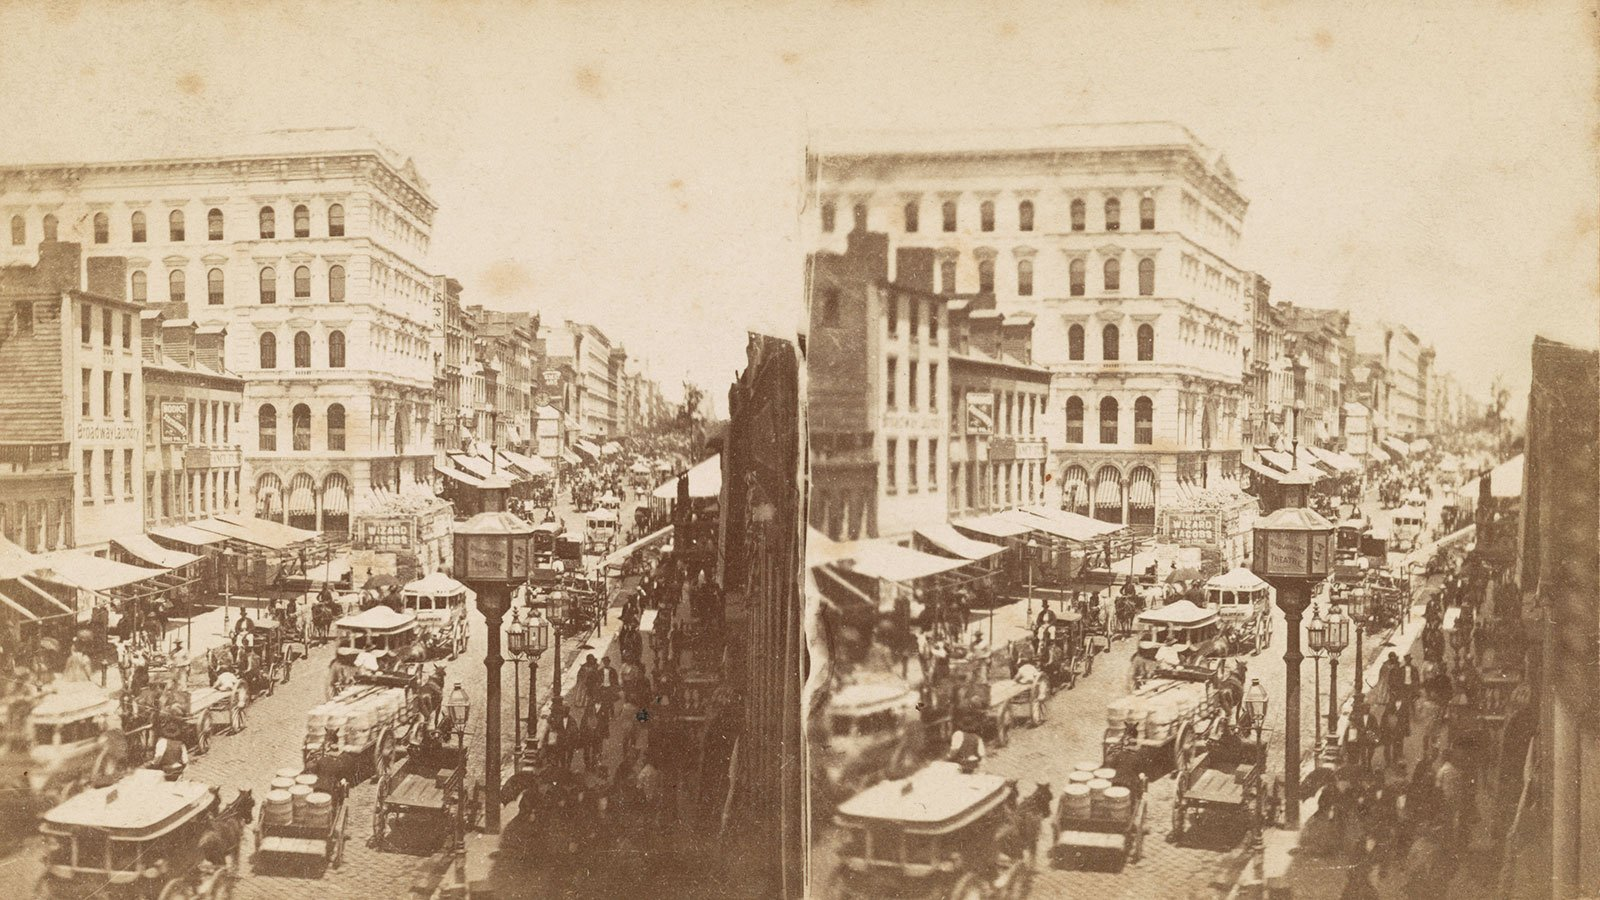 Broadway, near Grand Street in New York City, circa 1870